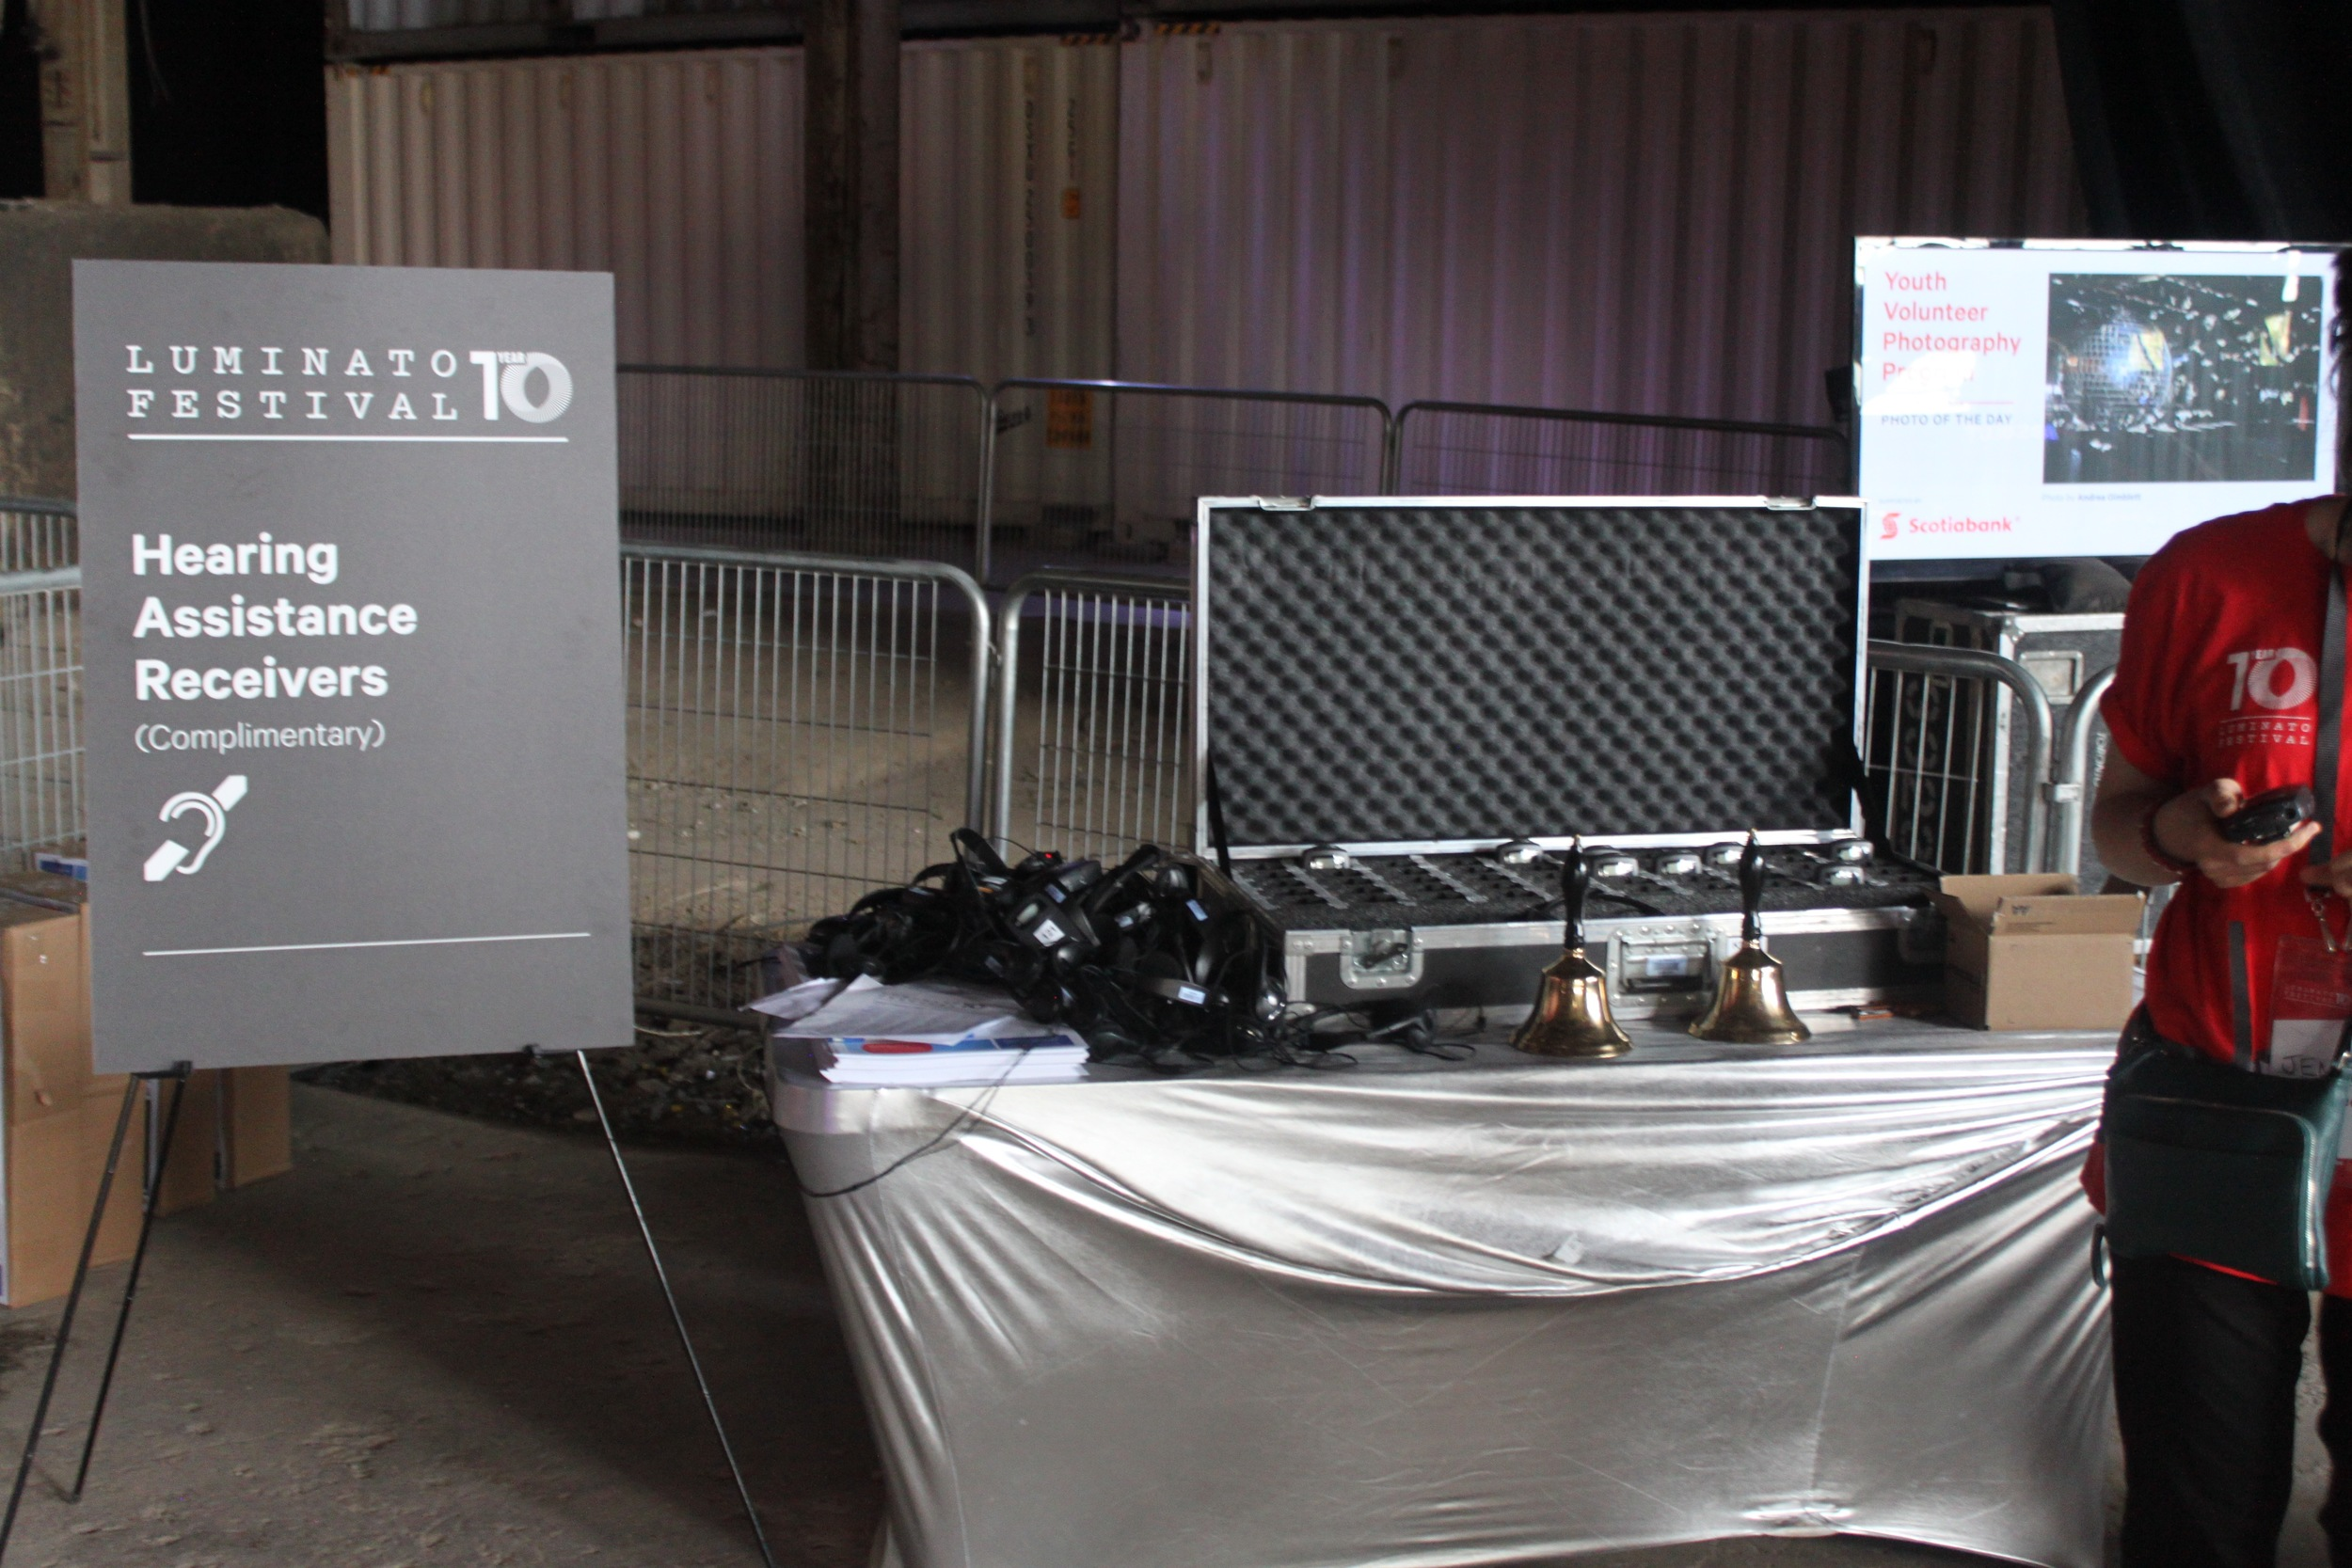 Picture of the booth containing the Hearing Assistance Receivers